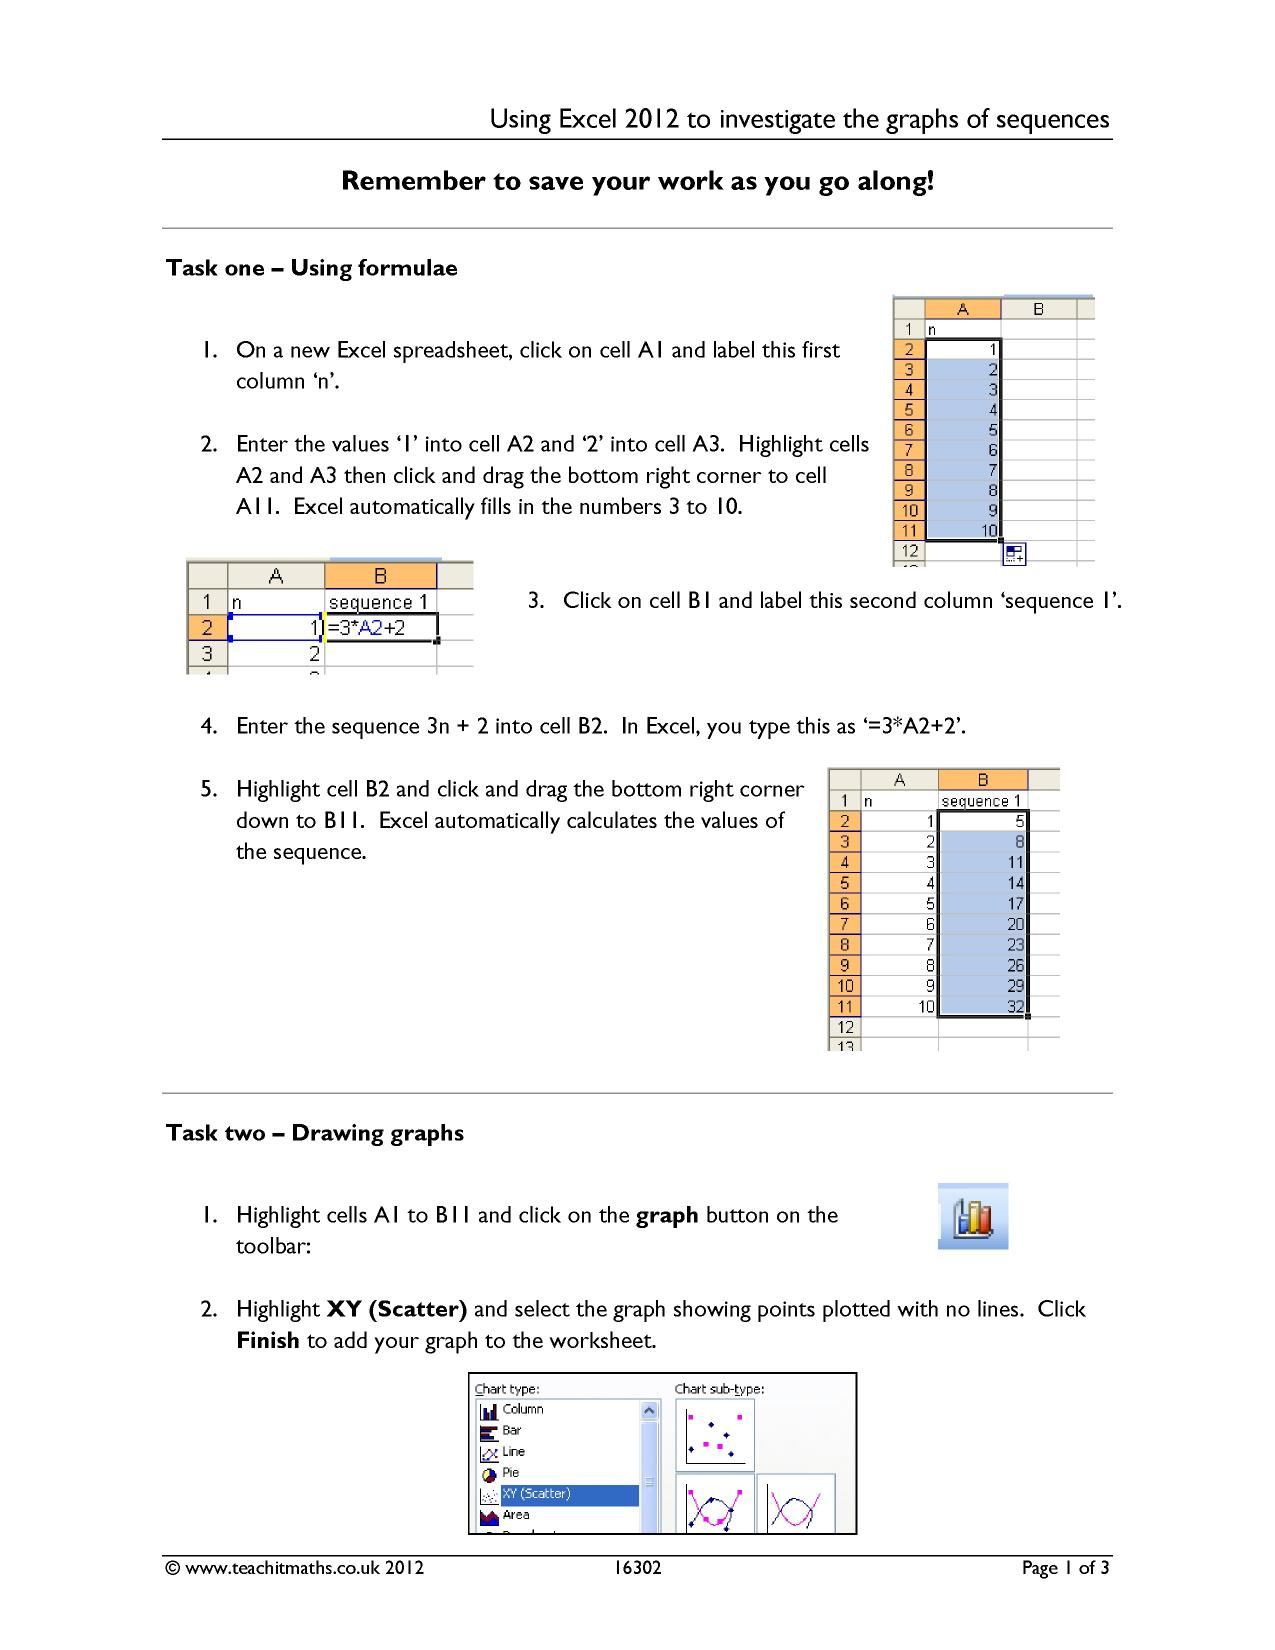 Using Excel and sequences to investigate straight line graphs